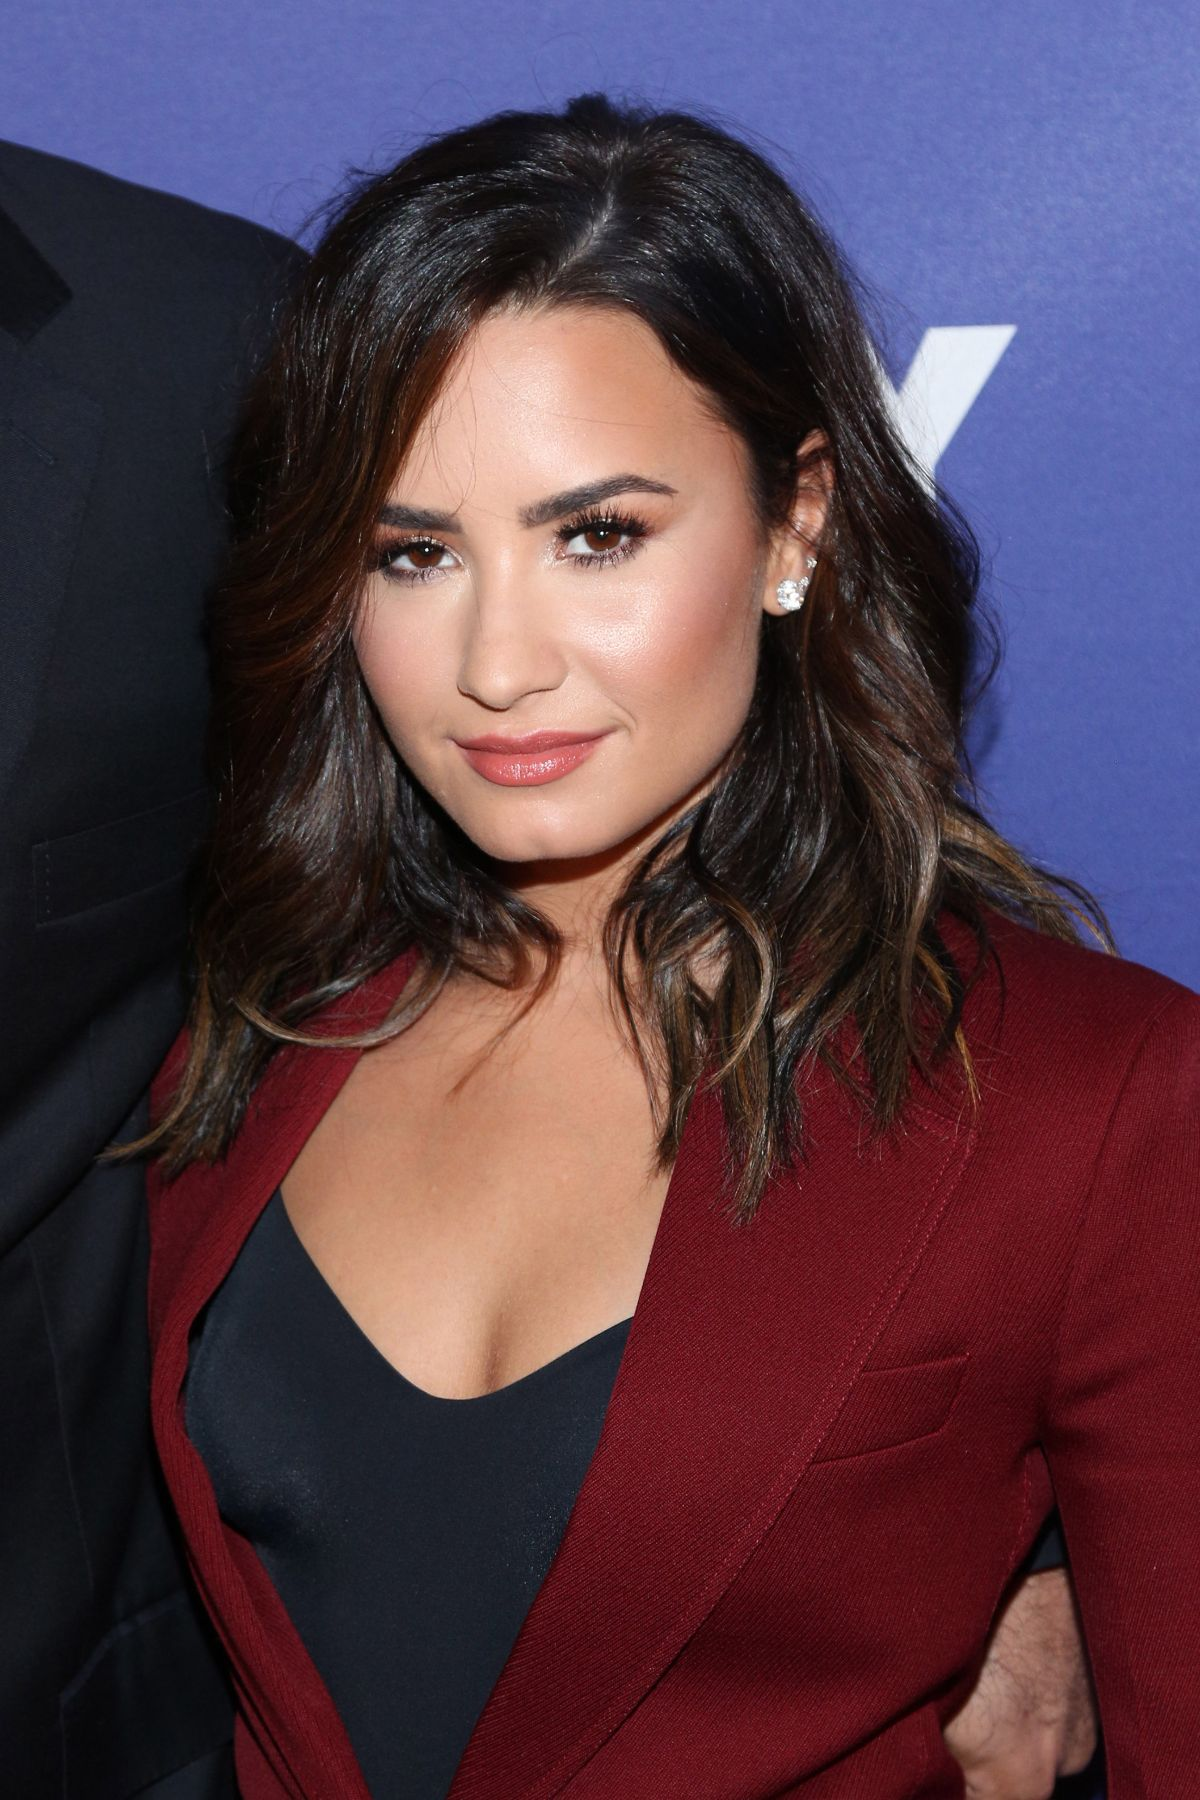 demi lovato - photo #23